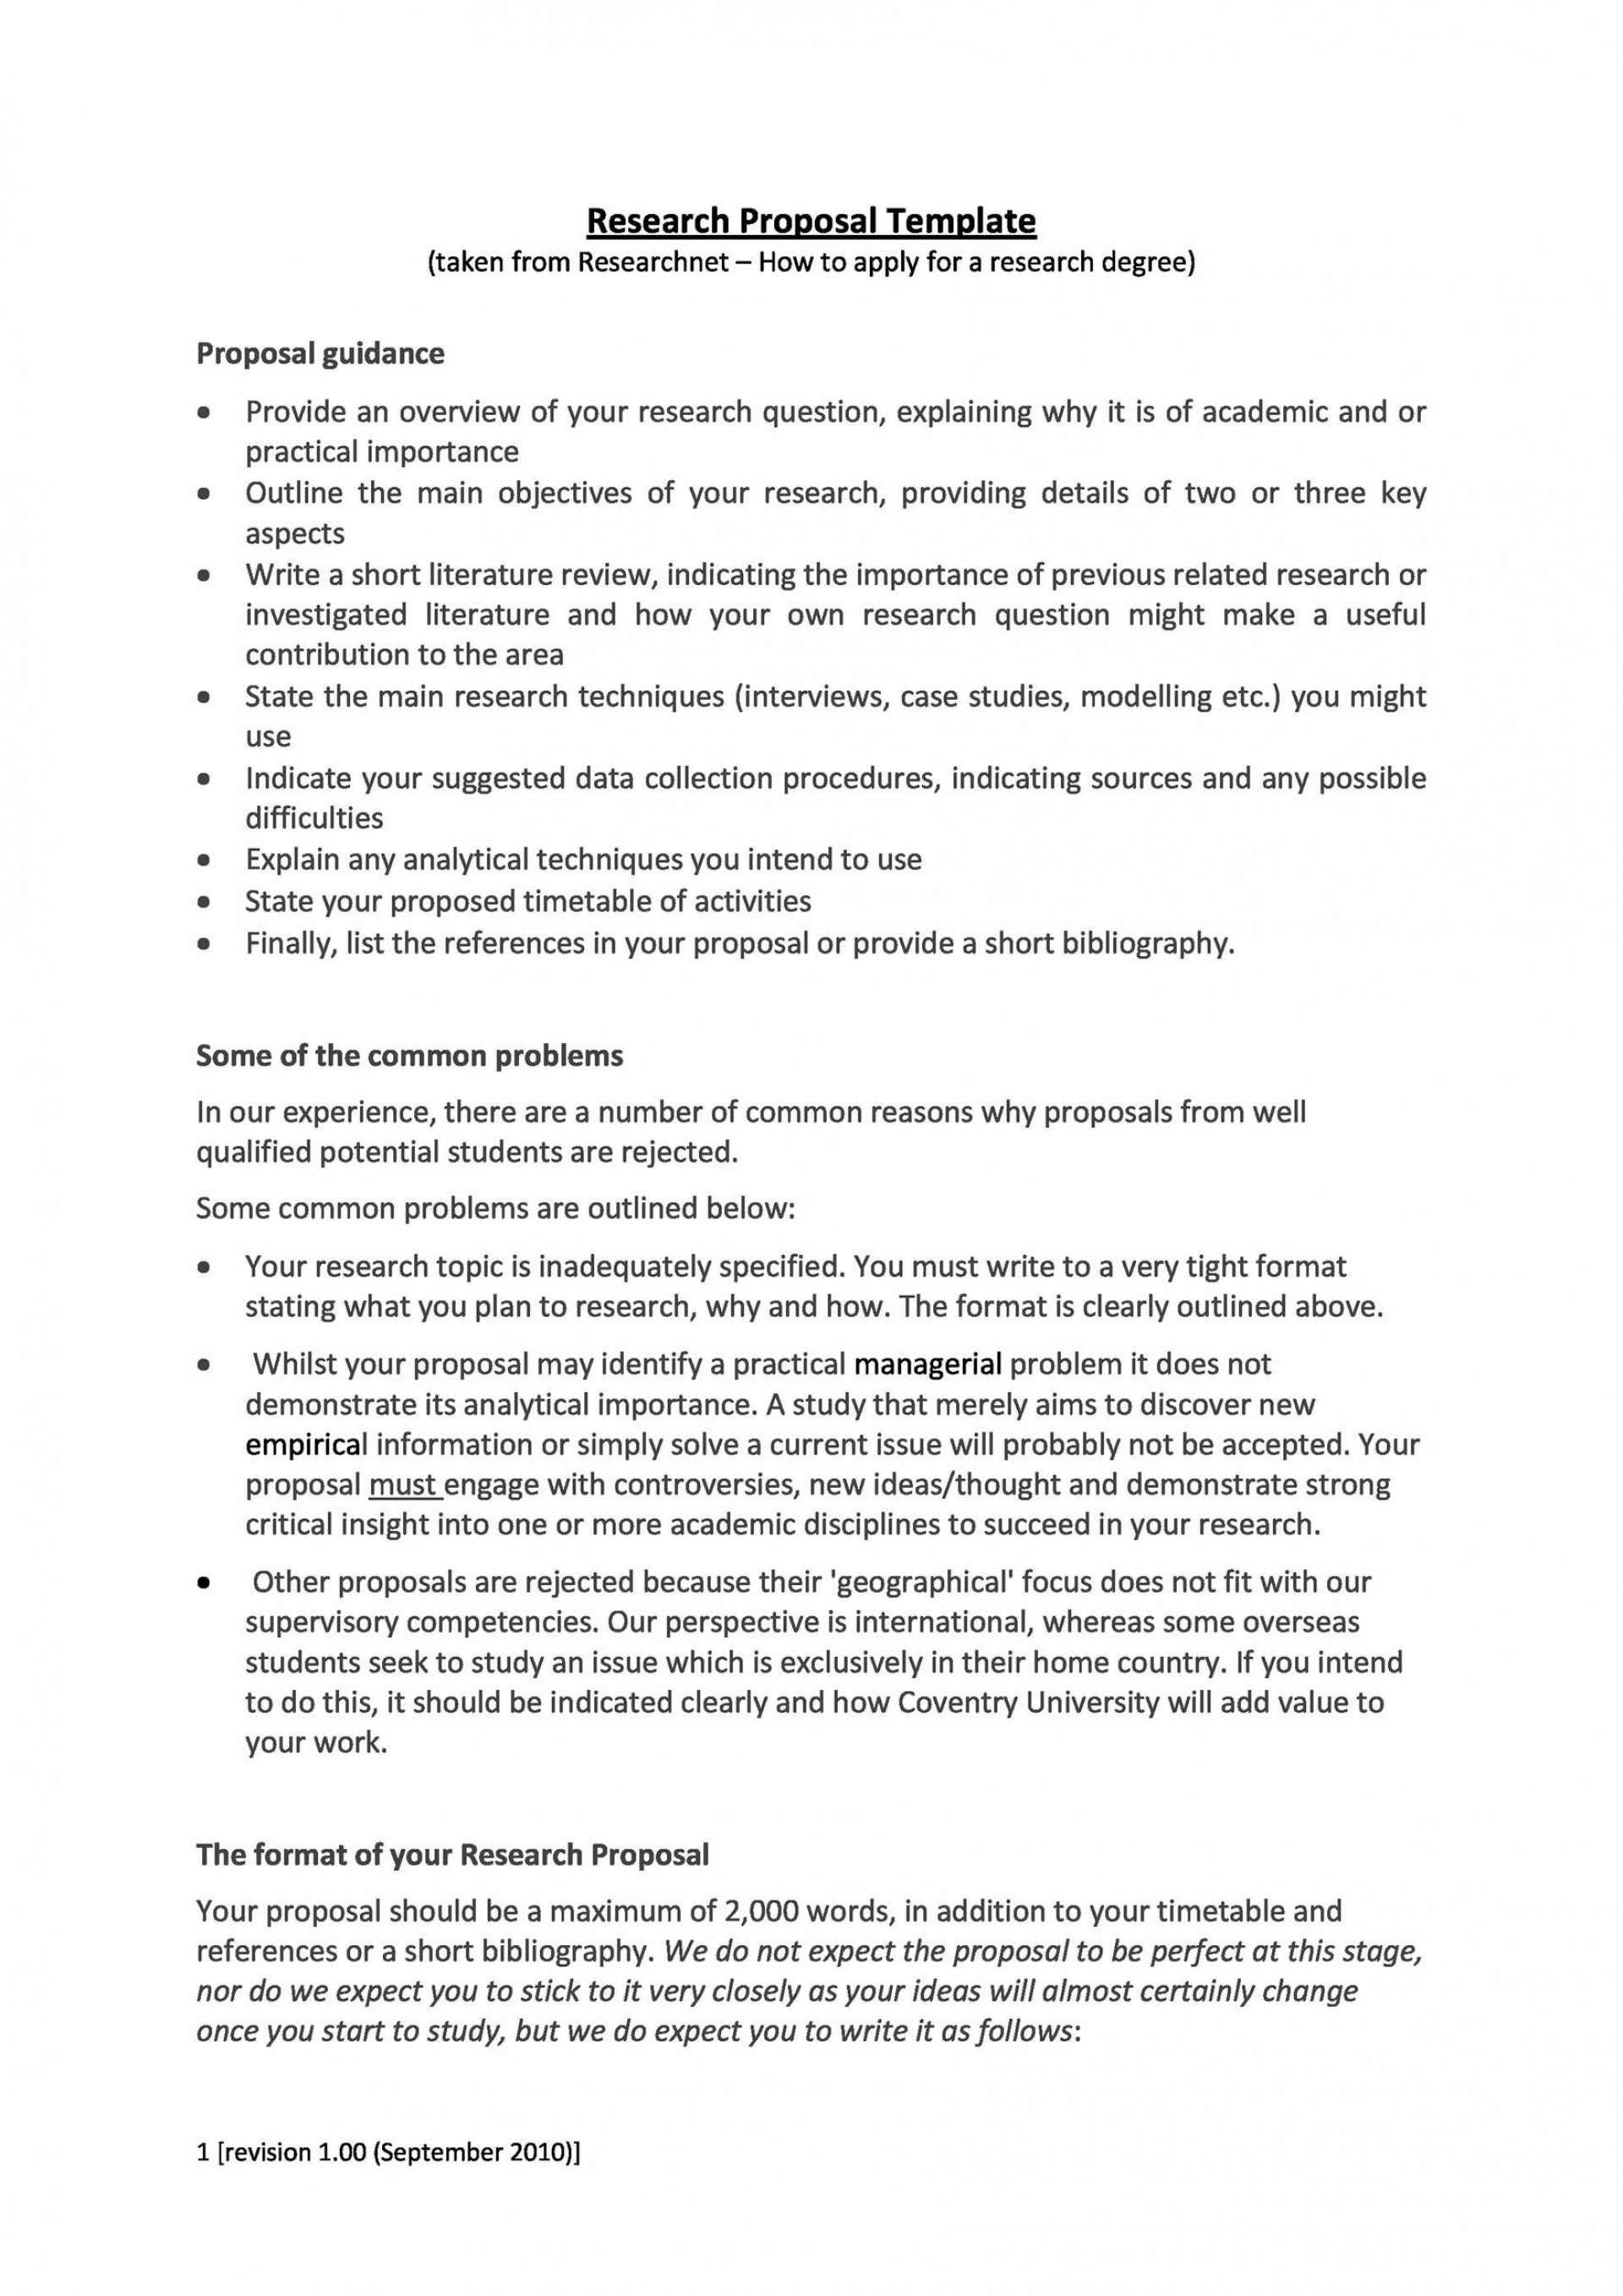 006 Excellent Research Topic Proposal Template High Def  Format Paper Example1920